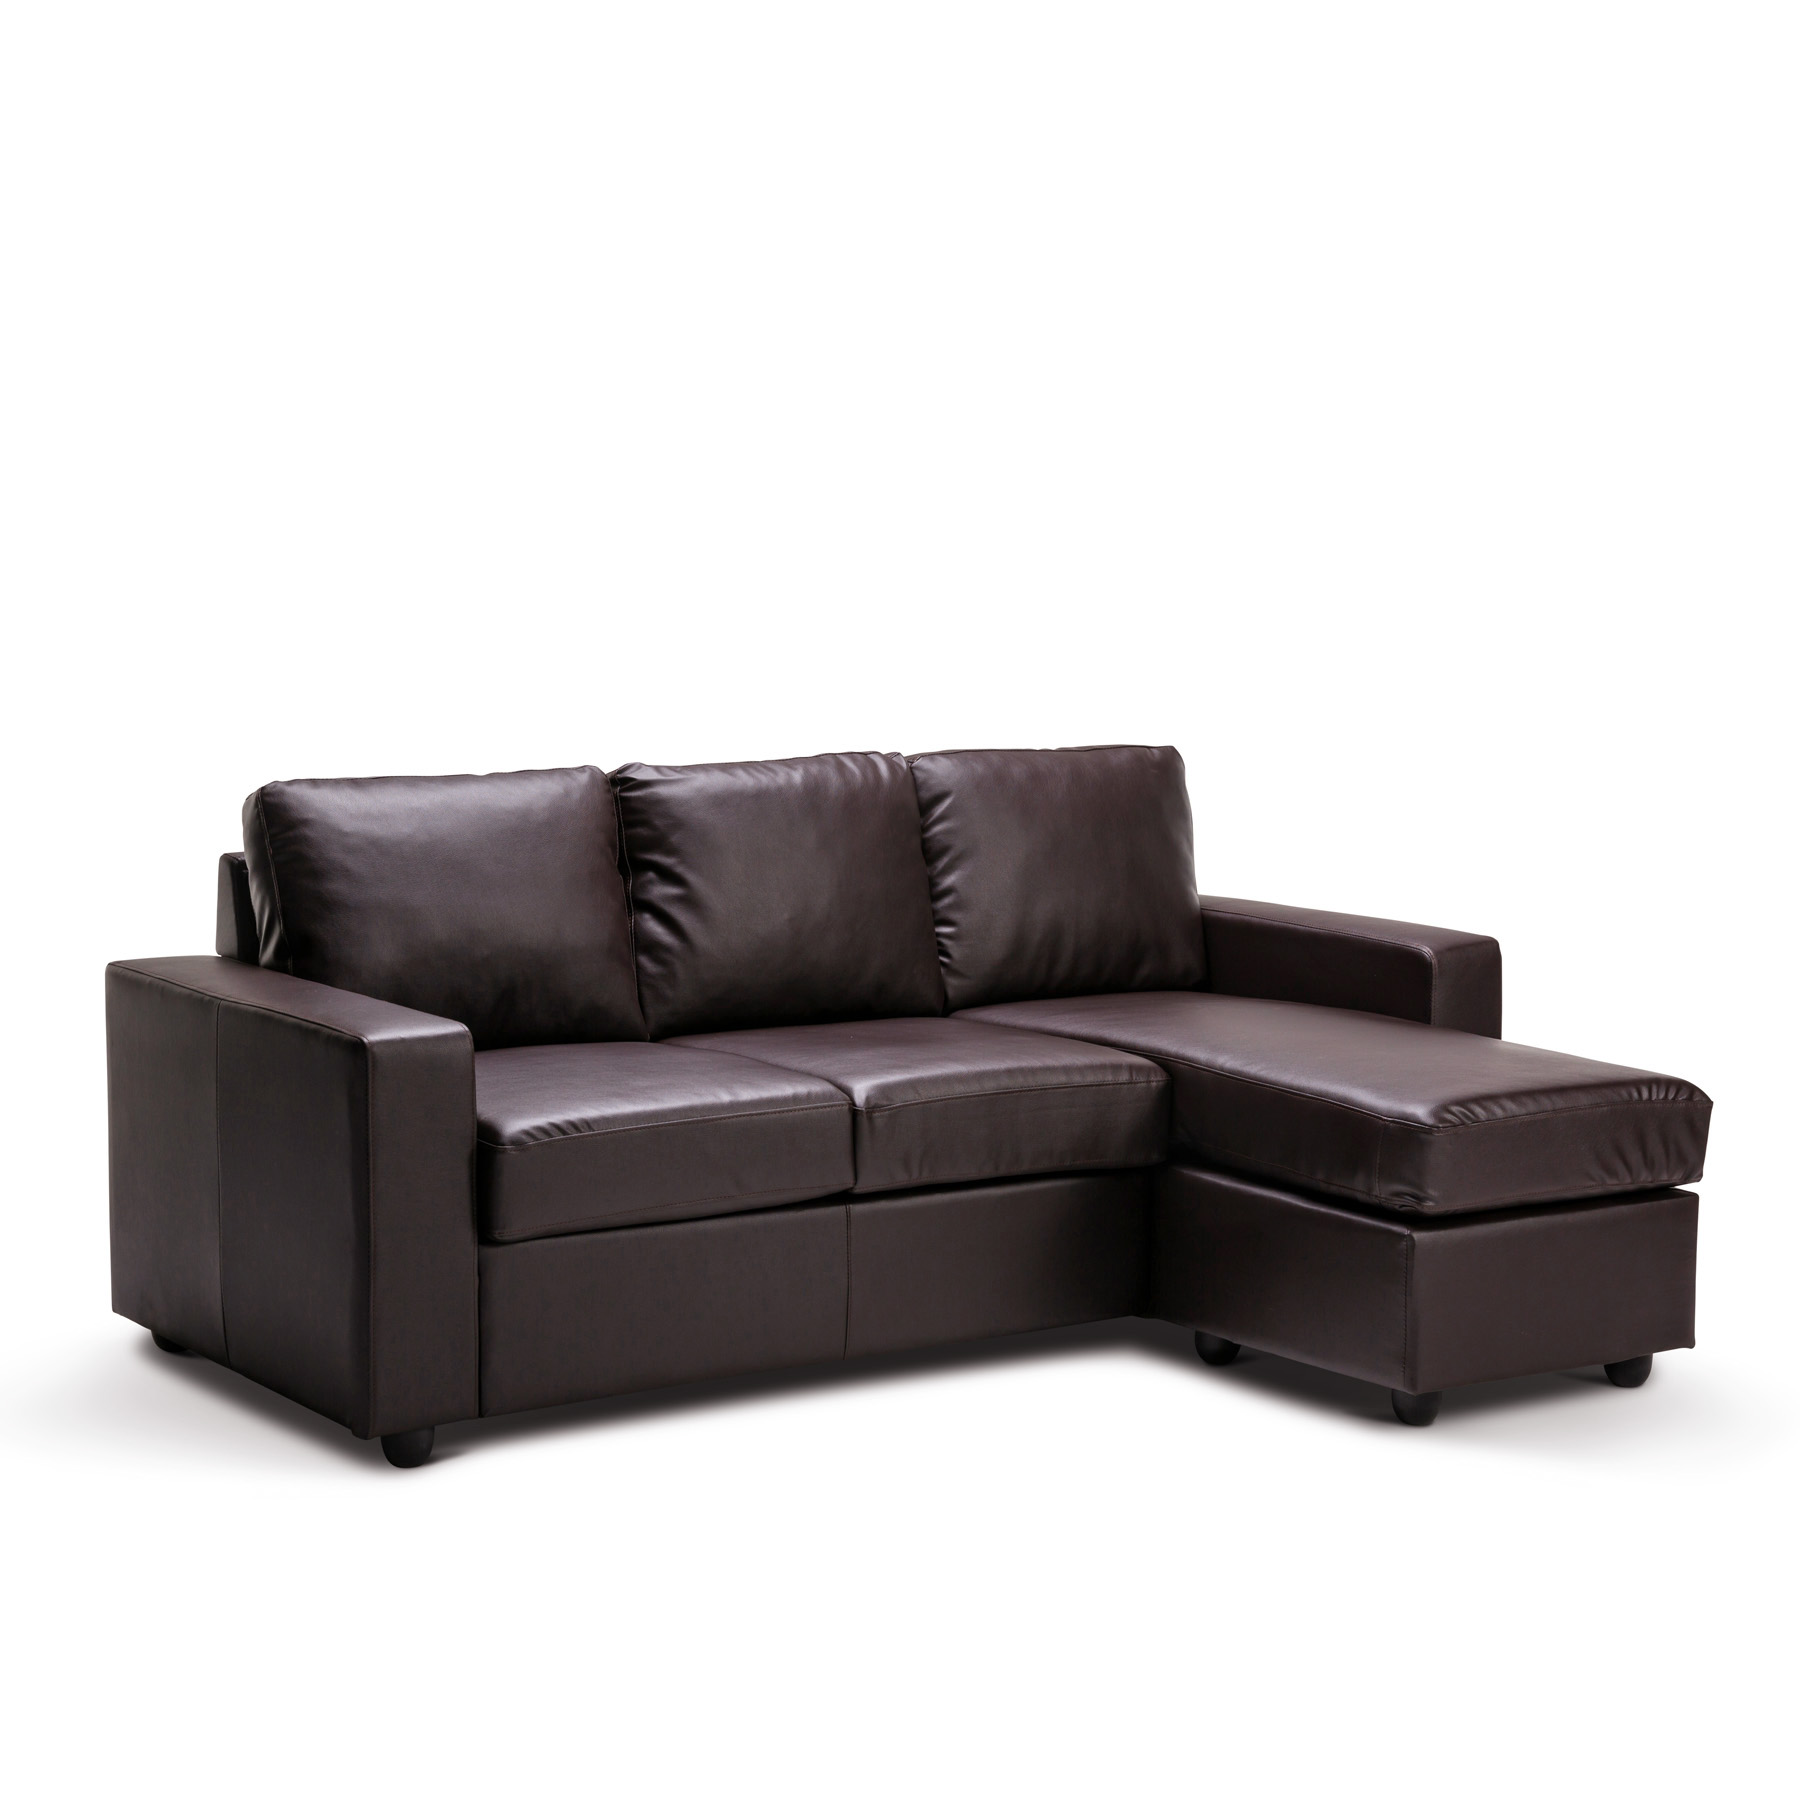 Diamond Modern White Leather U Shaped Sectional Sofa W: Olivia New 3 Seater L Shape Lounge Black / Brown Modular